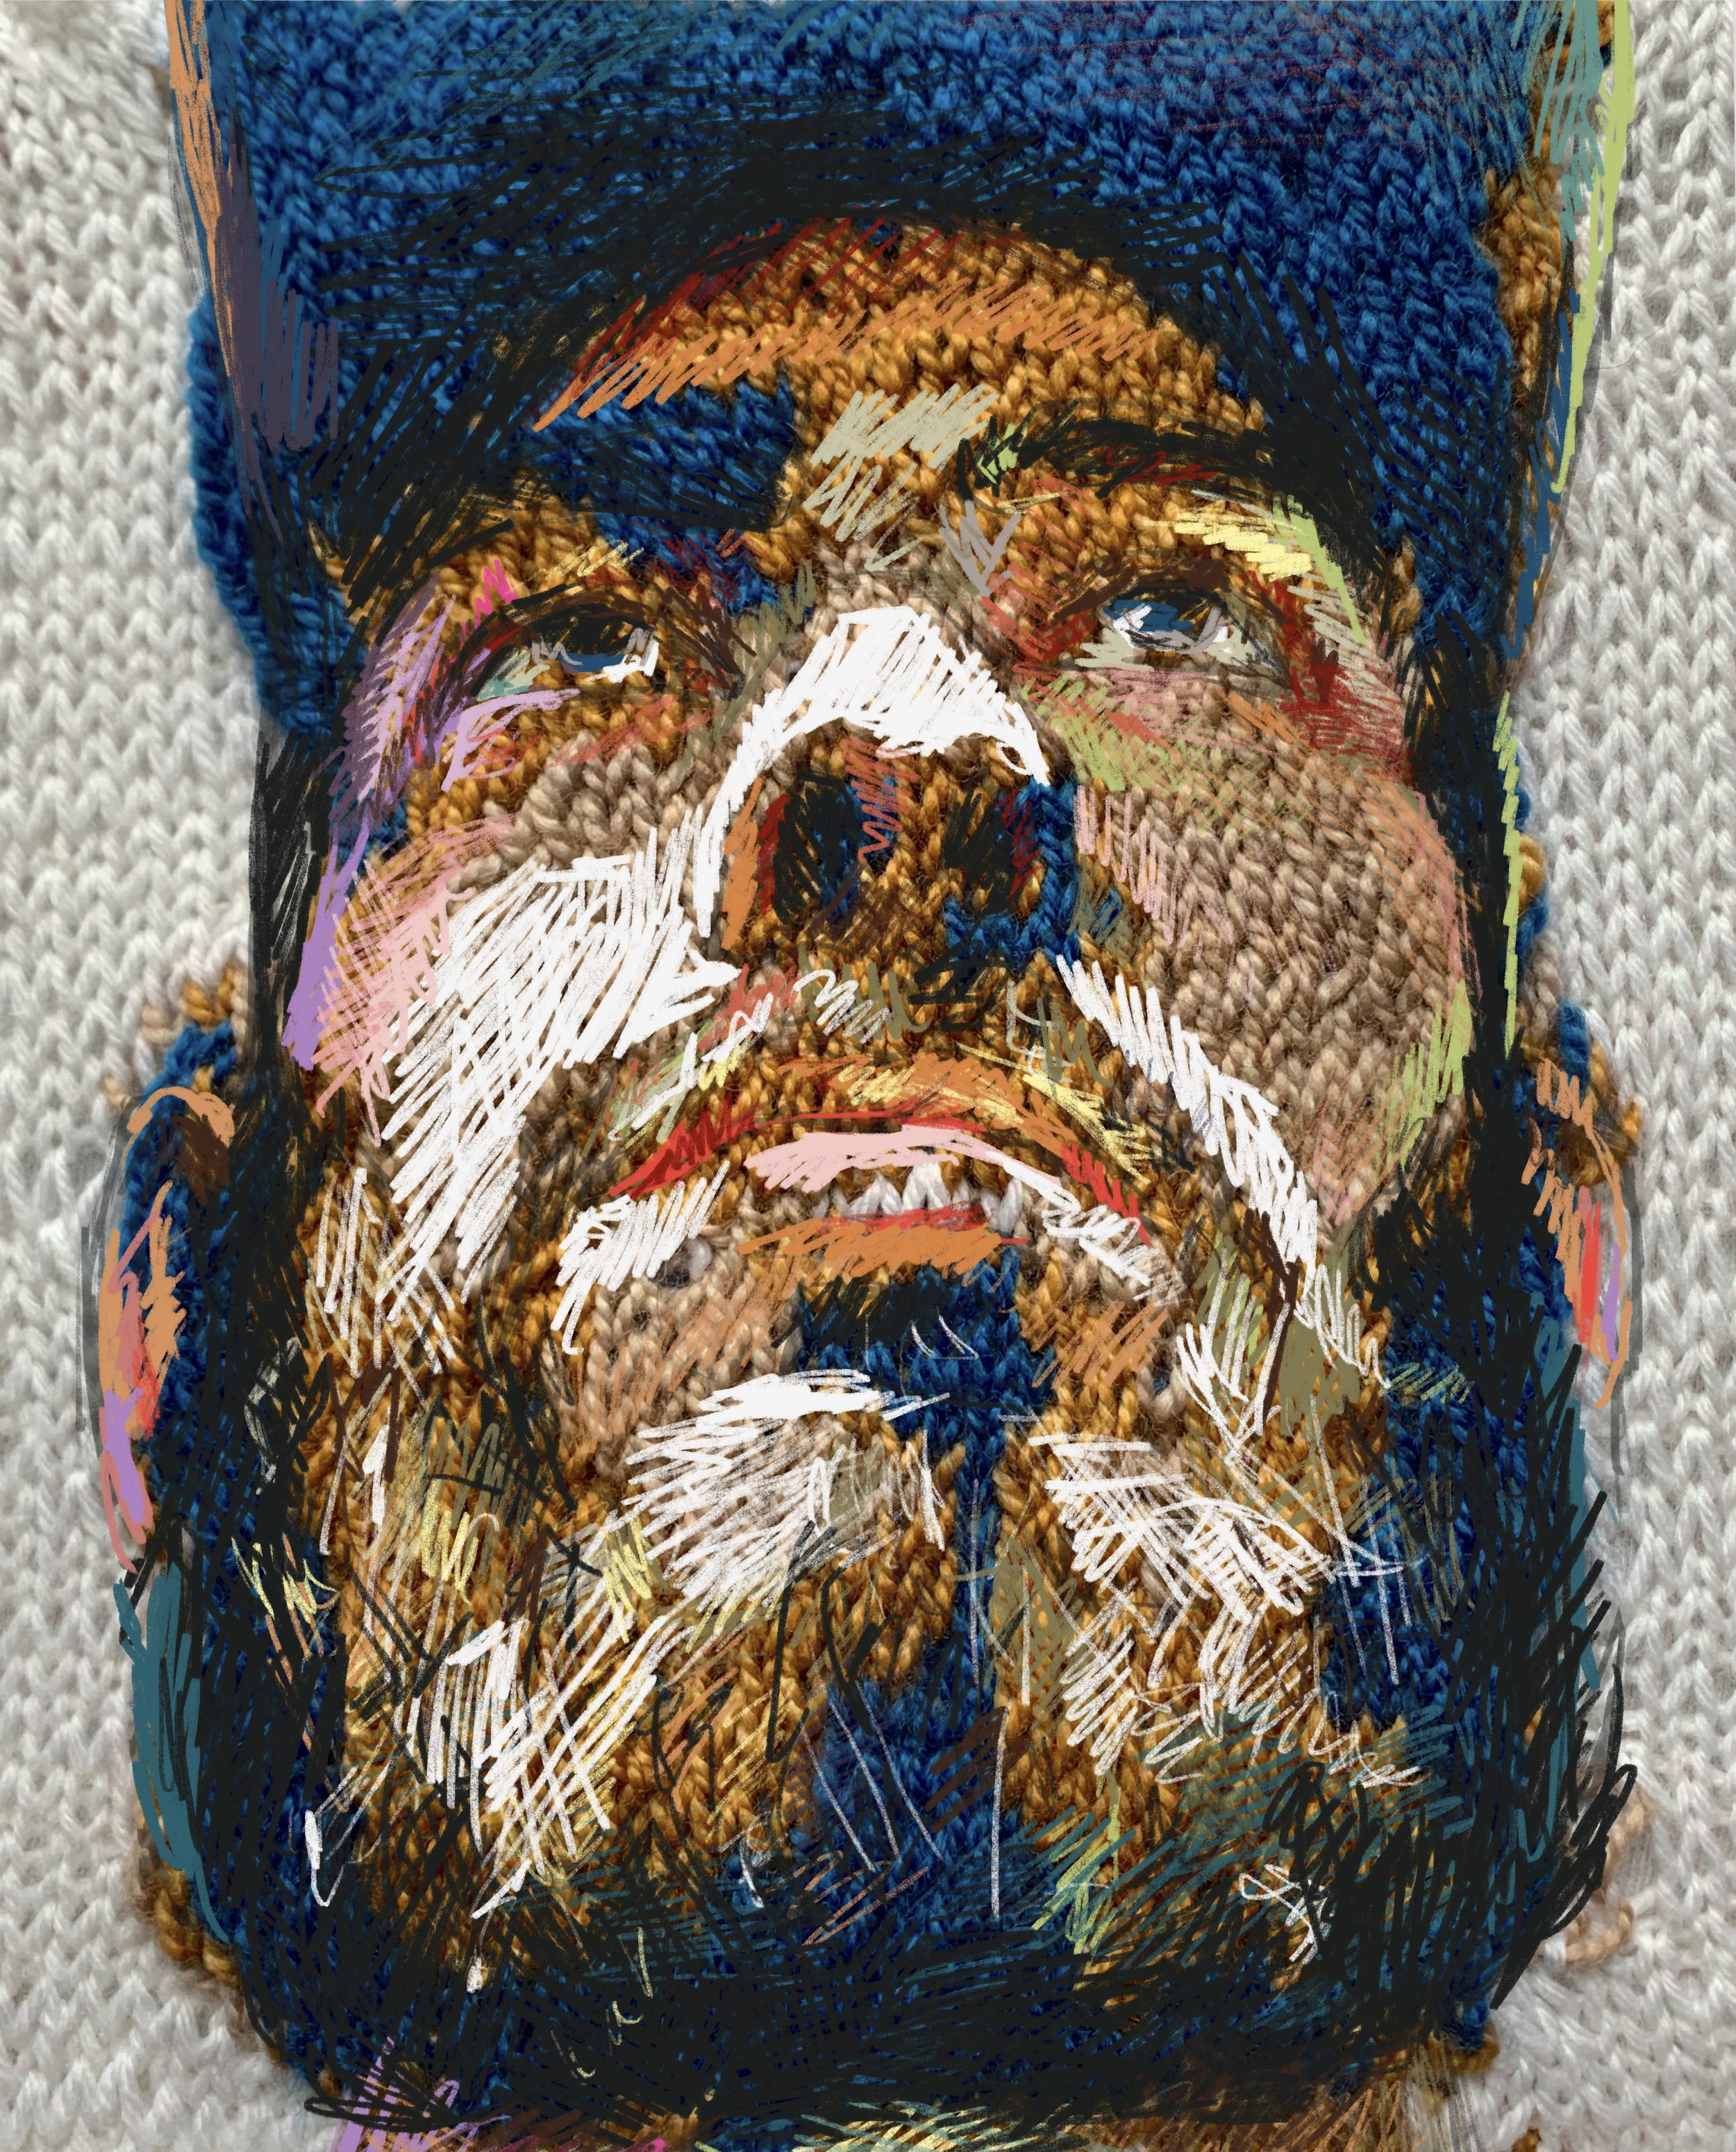 faith portrait knit.jpg